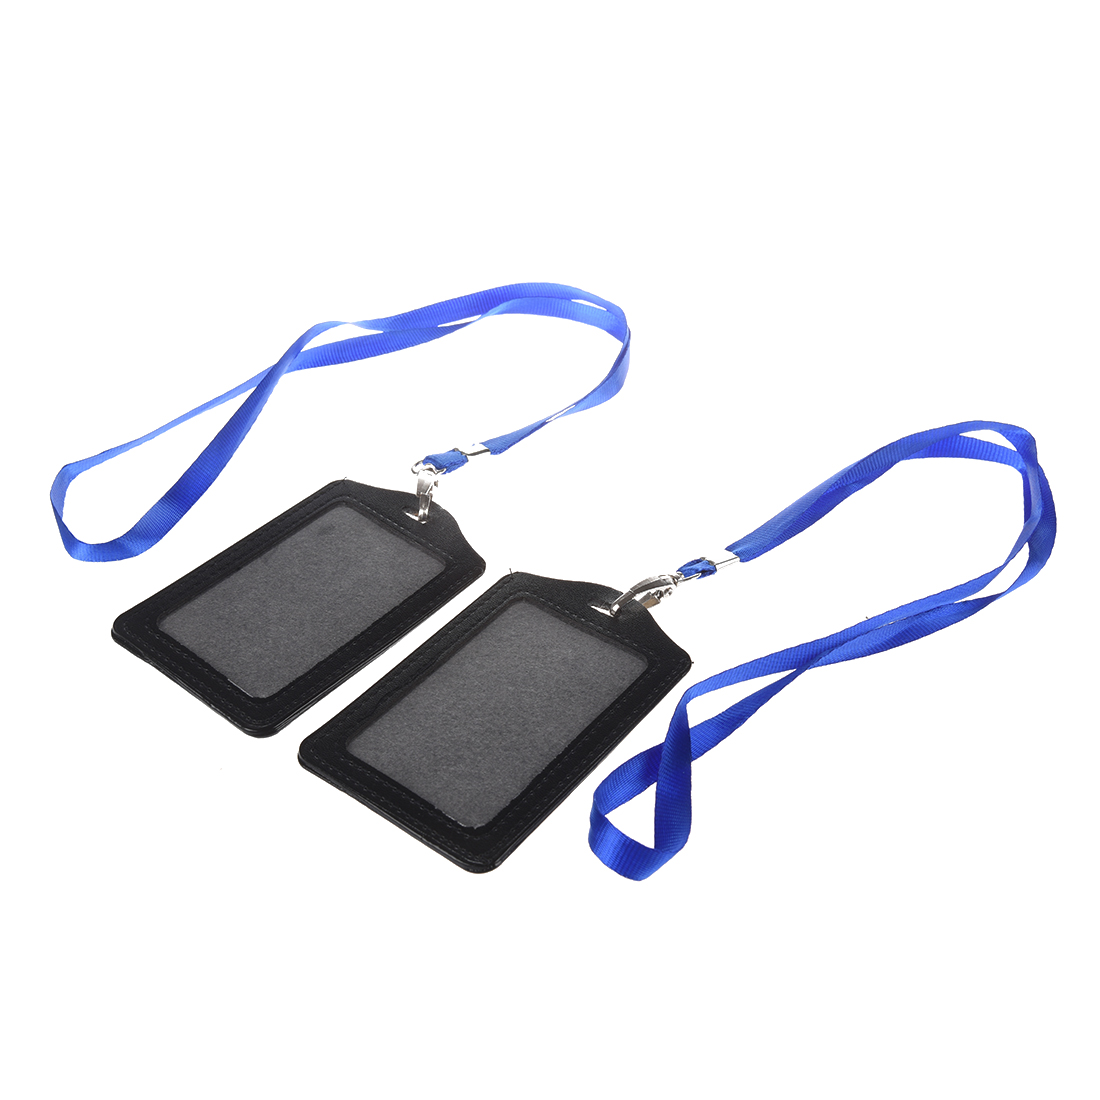 SODIAL(R) Faux Leather Business ID Badge Card Vertical Holders 2 Pcs